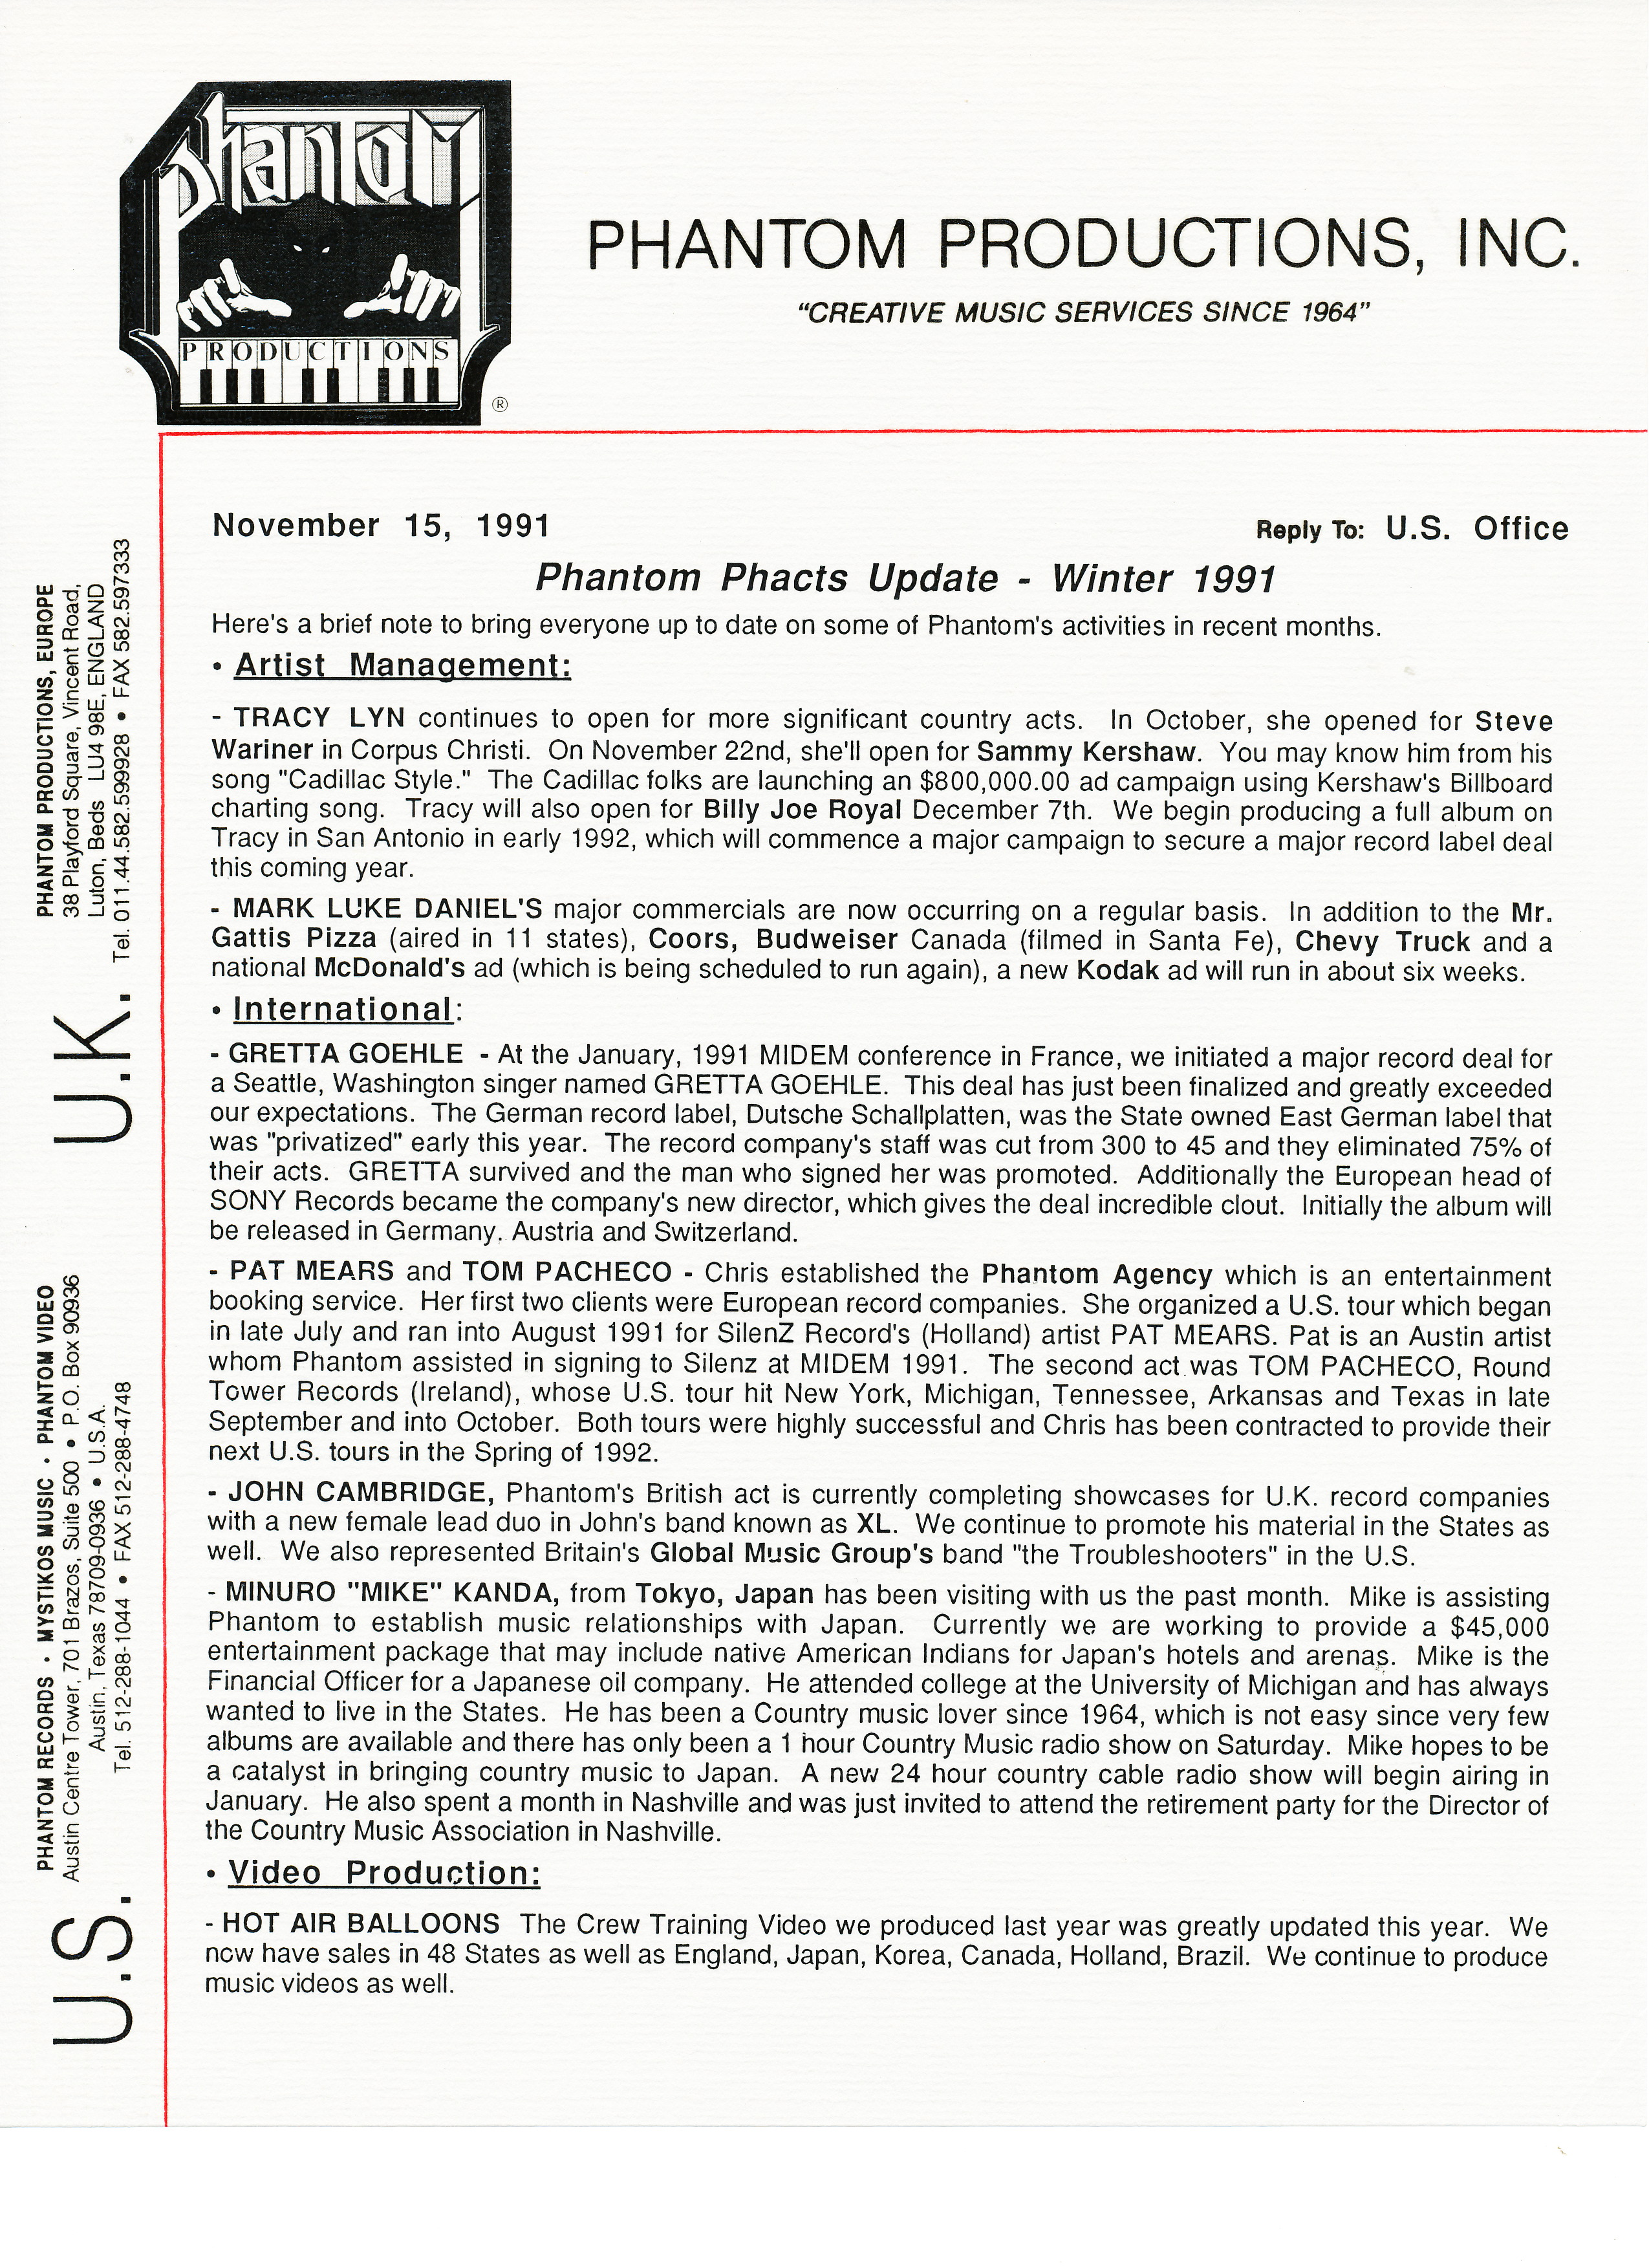 Phantom's Winter 1991 Newsletter